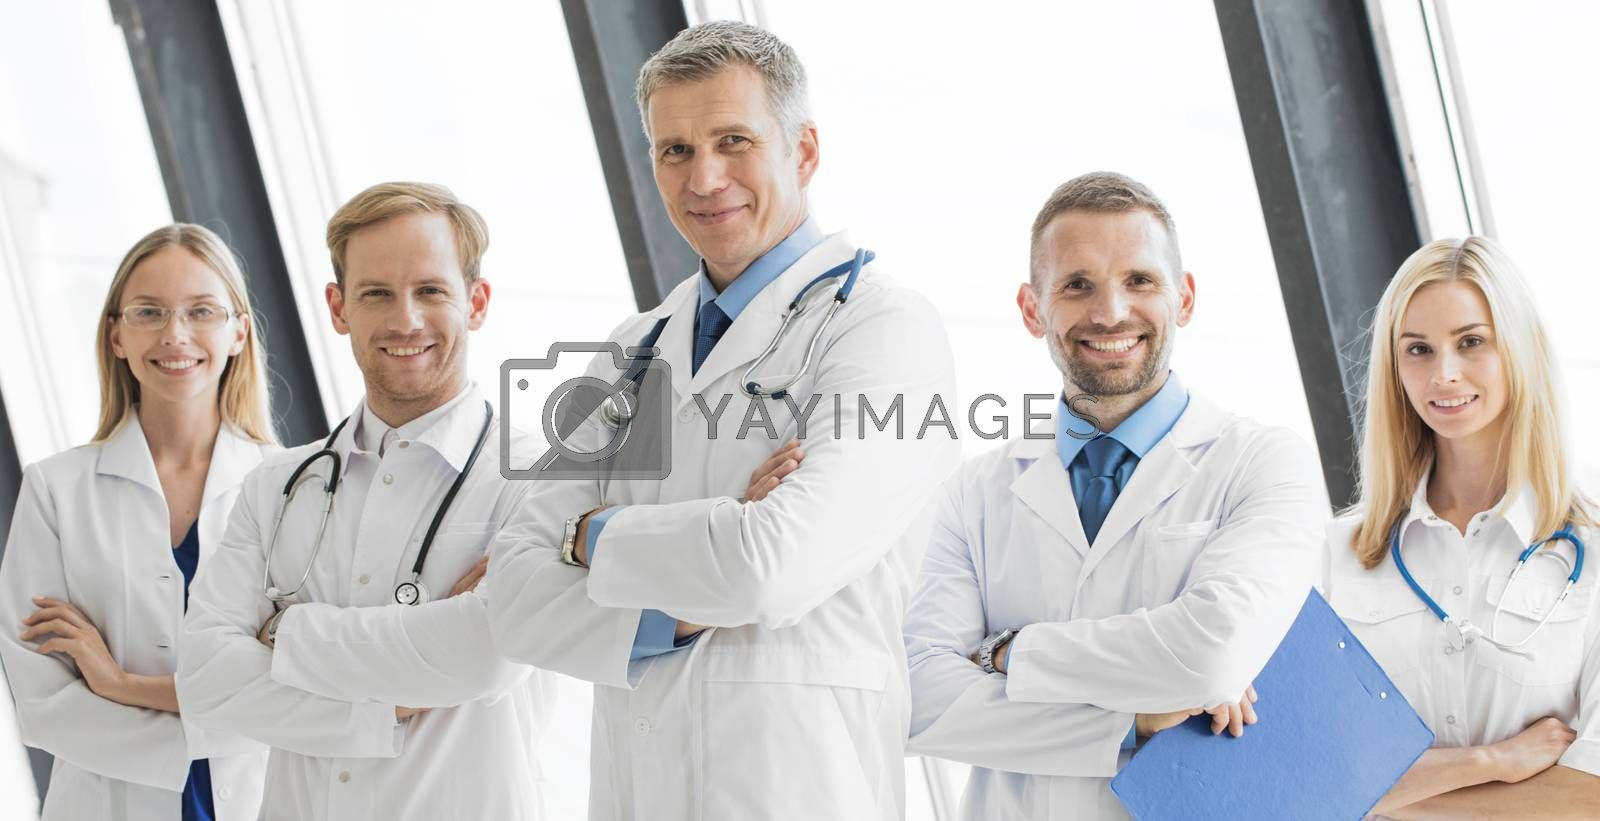 Team of medical professionals by Yellowj